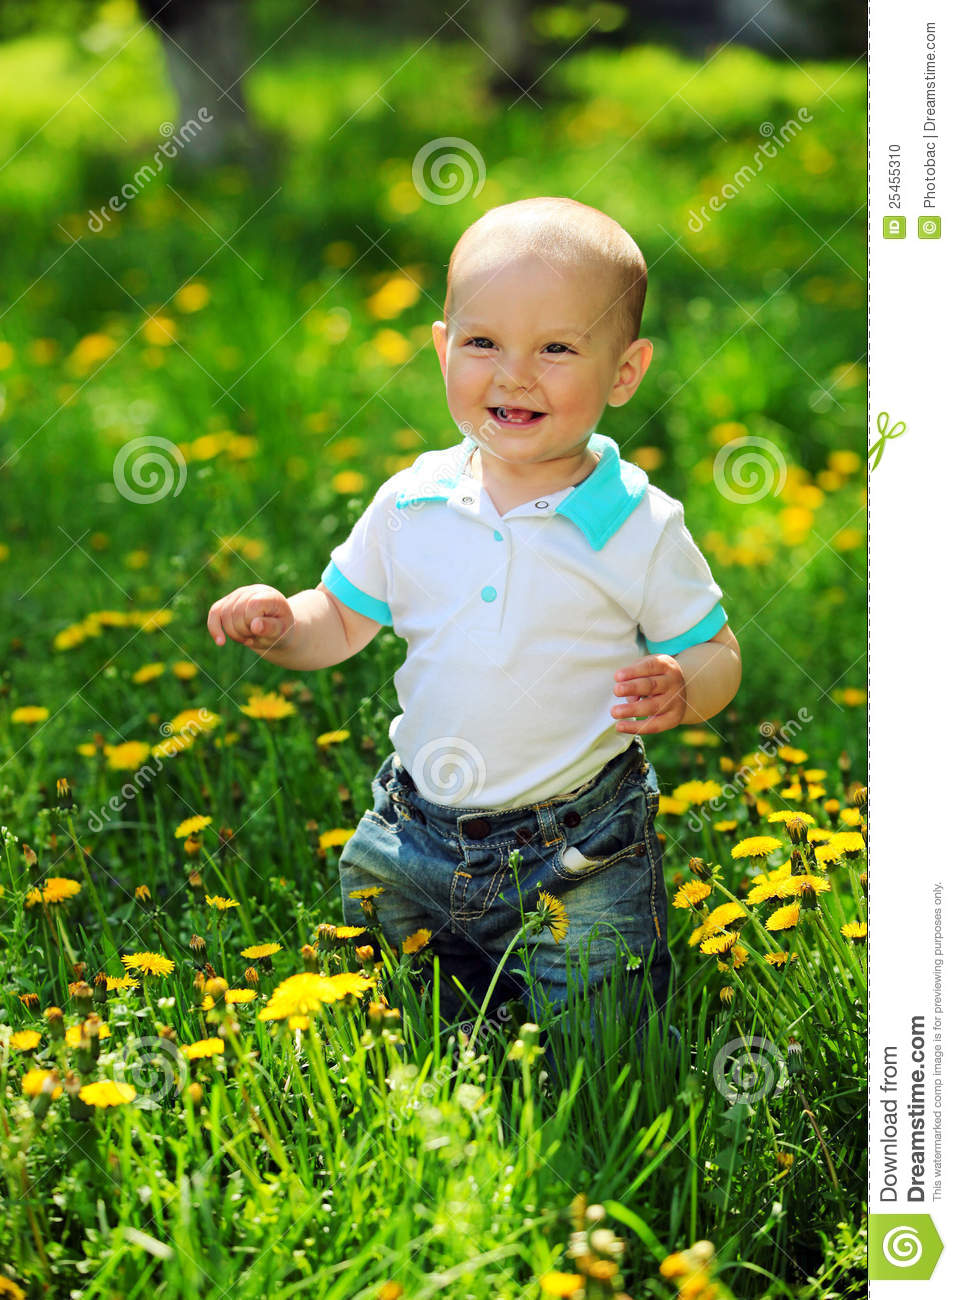 Happy One Year Old Boy On A Walk In A Park Stock Photo